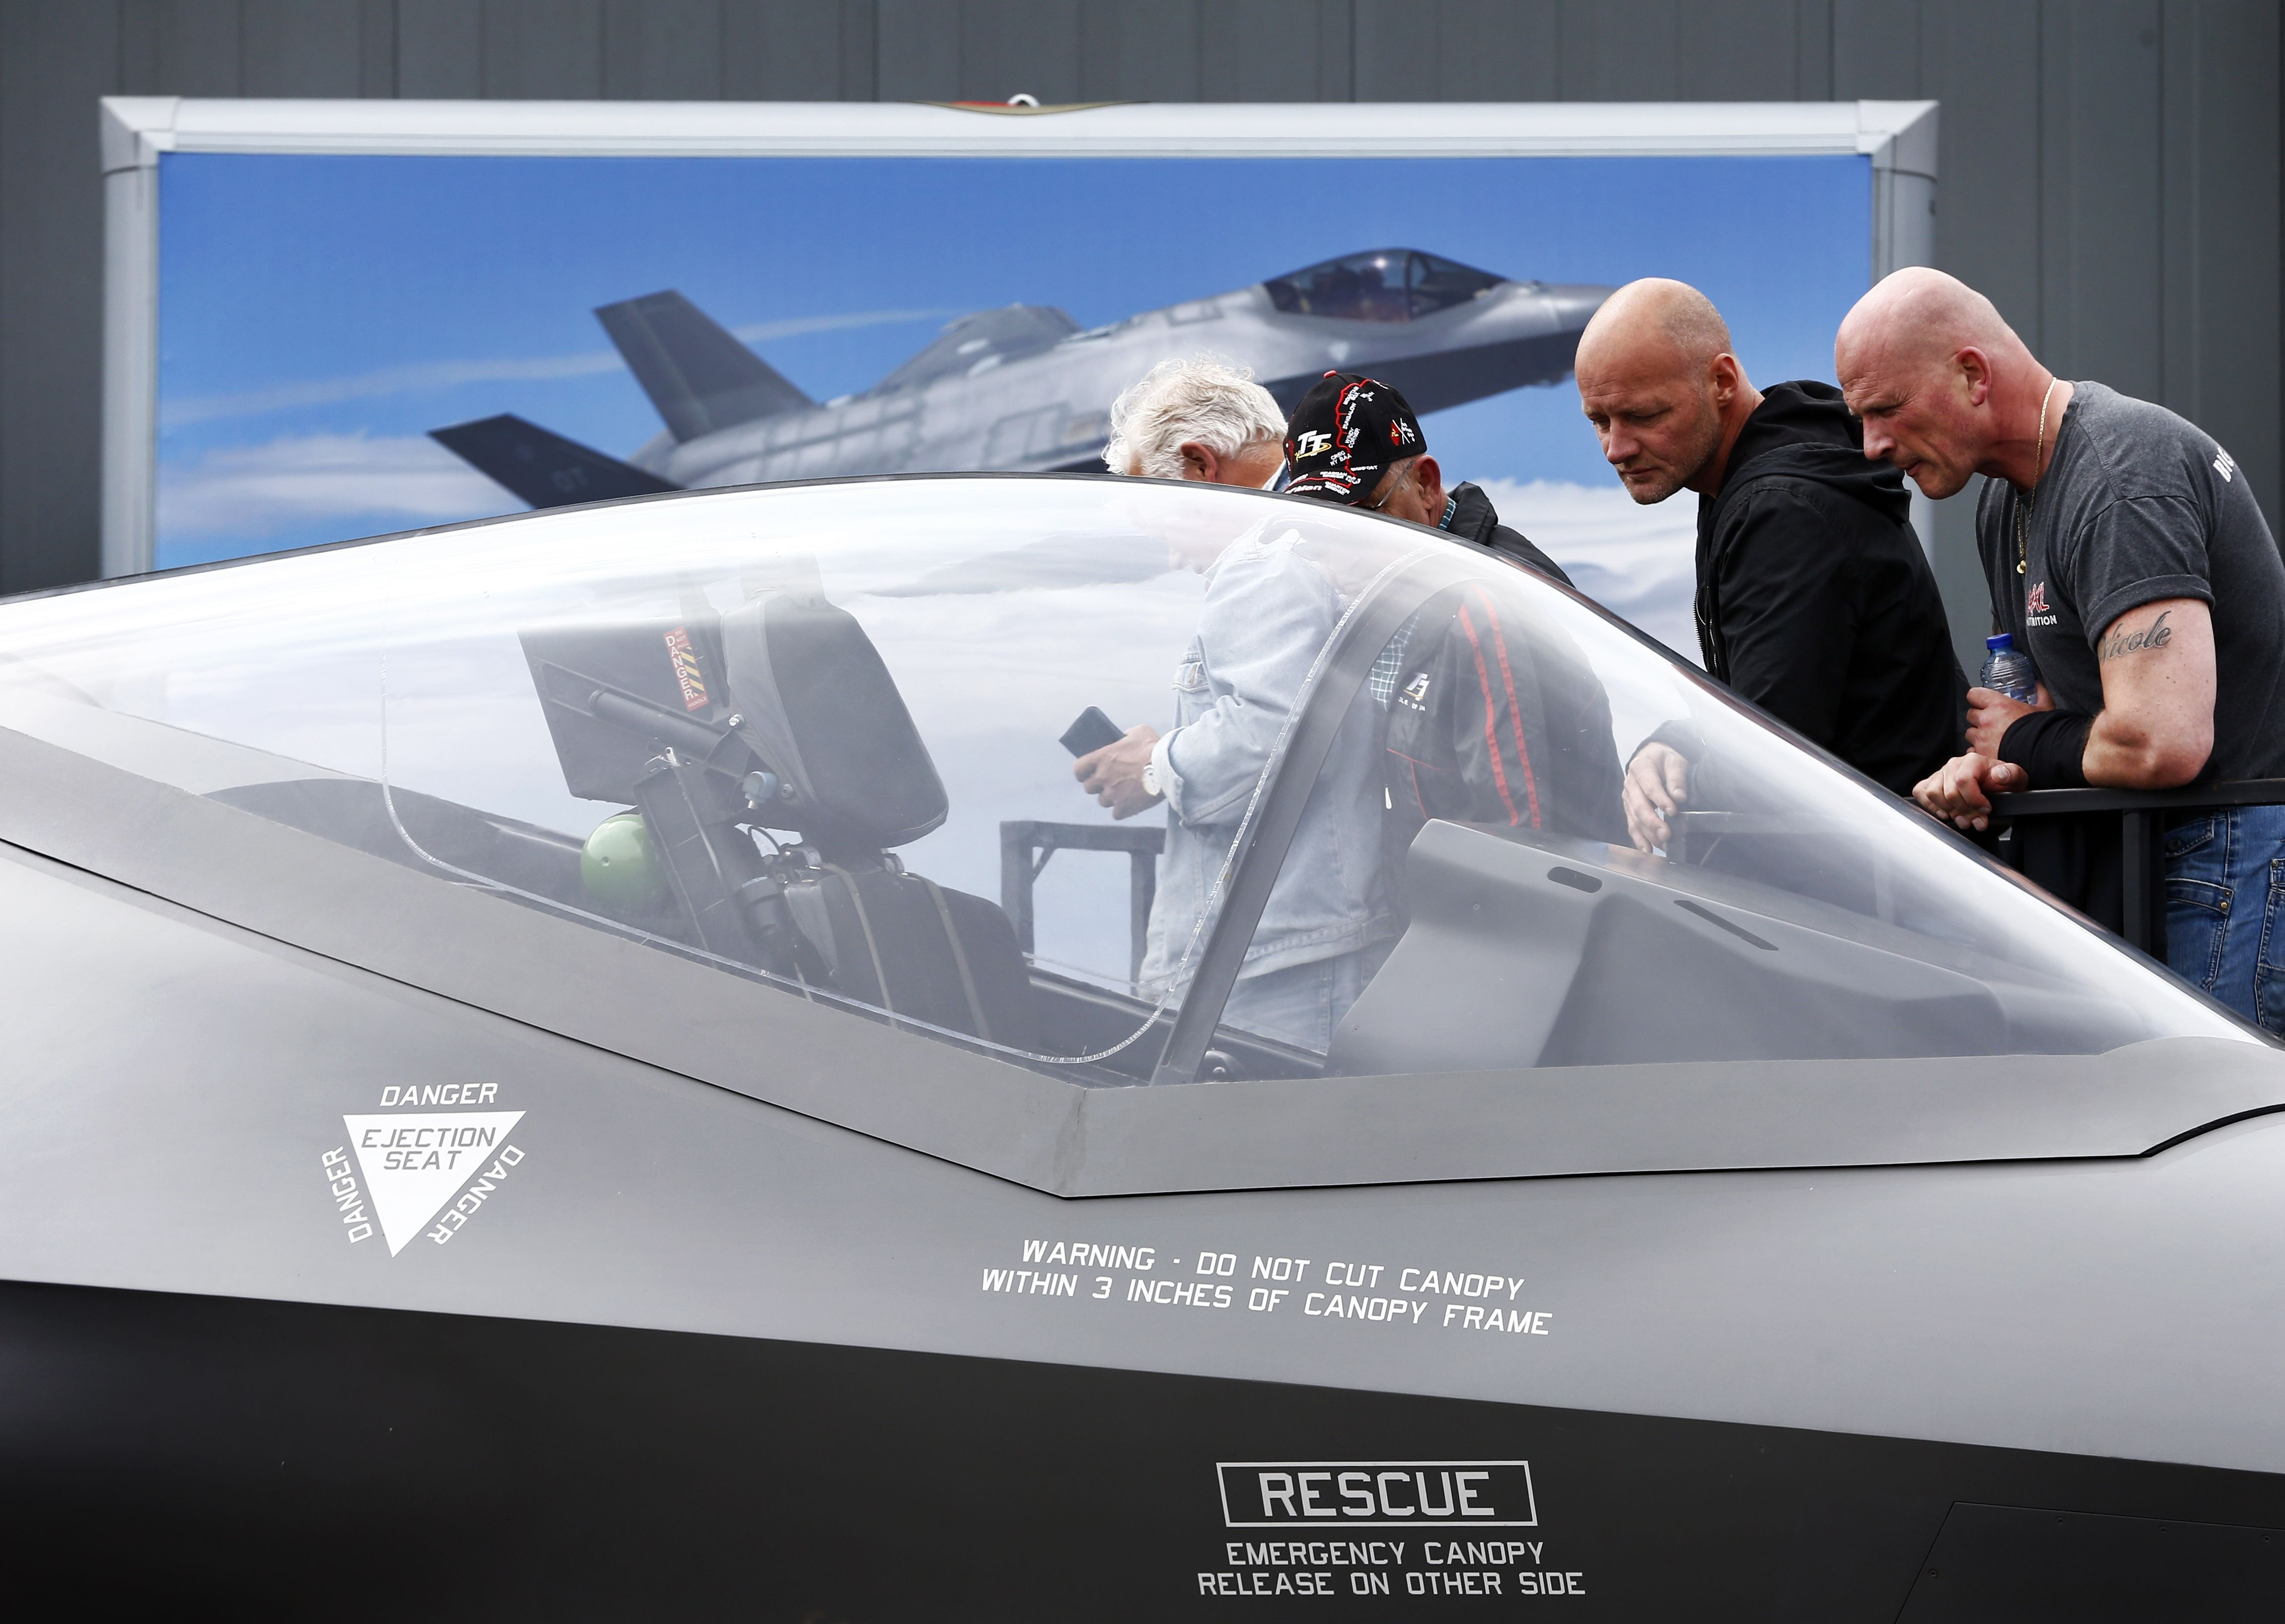 Visitors examine a replica of the Dutch F-35C Joint Striker Fighter during the Dutch Air Force Days at Leeuwarden Air Base on June 10, 2016. (Vincent Jannink/AFP via Getty Images)